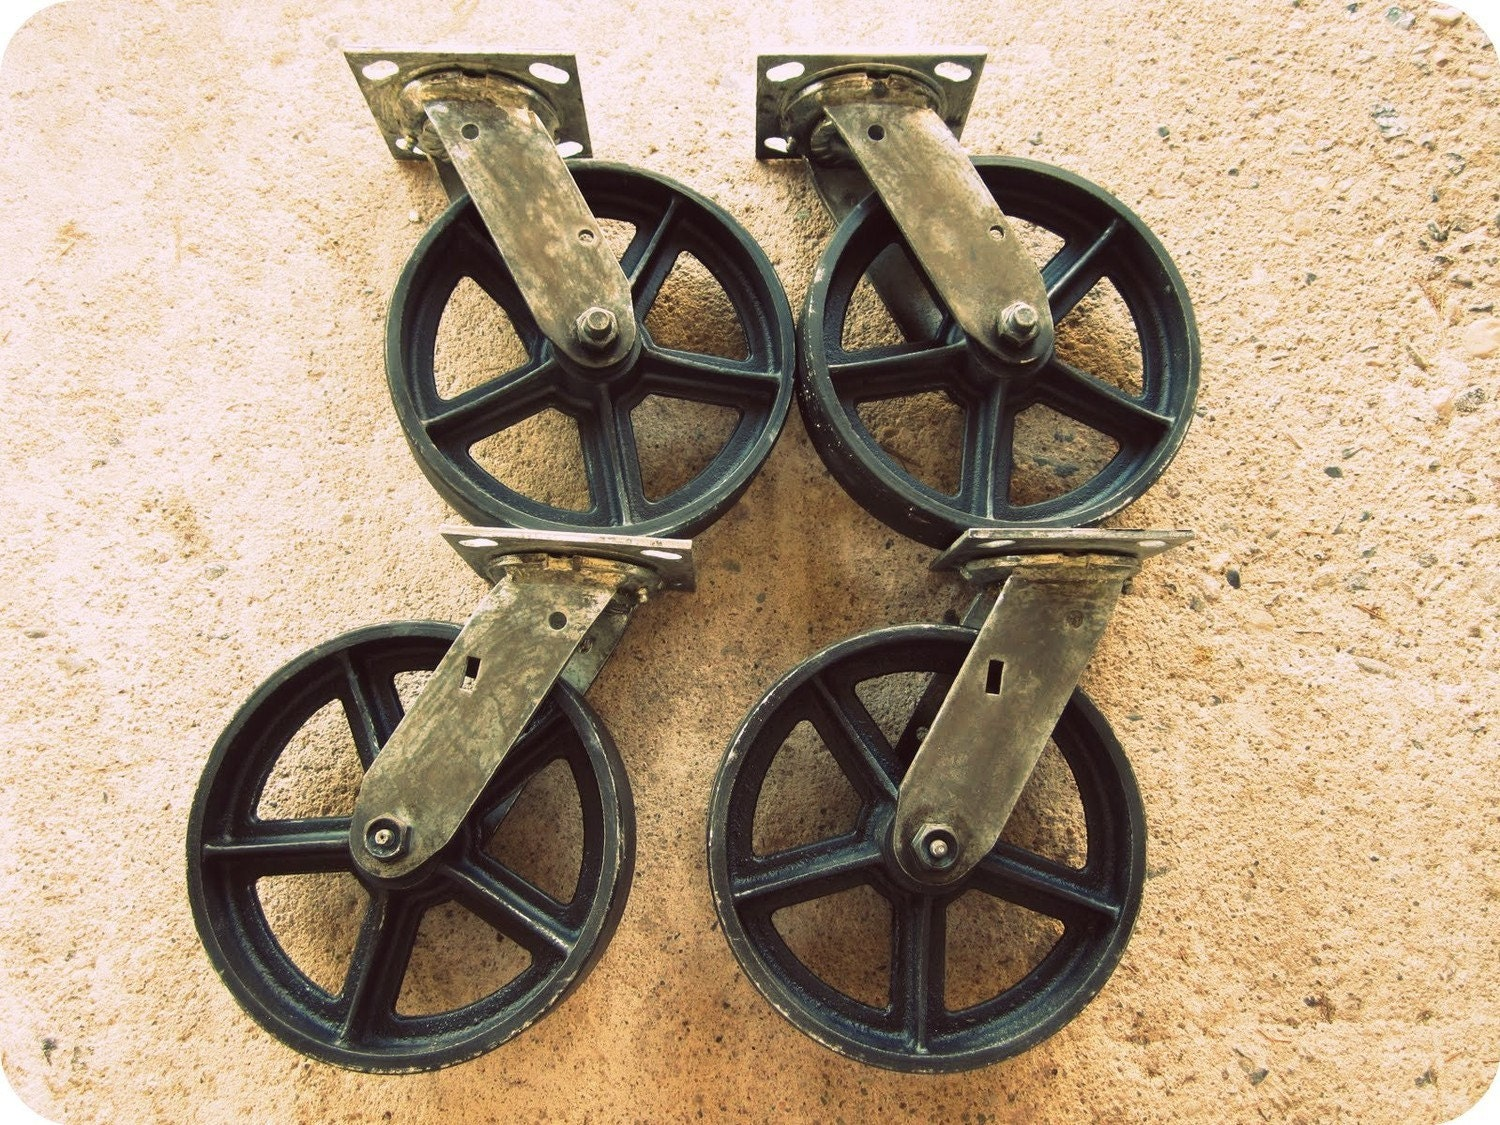 Vintage Swiveling 8 Inch Caster Wheels Antique Casters Set